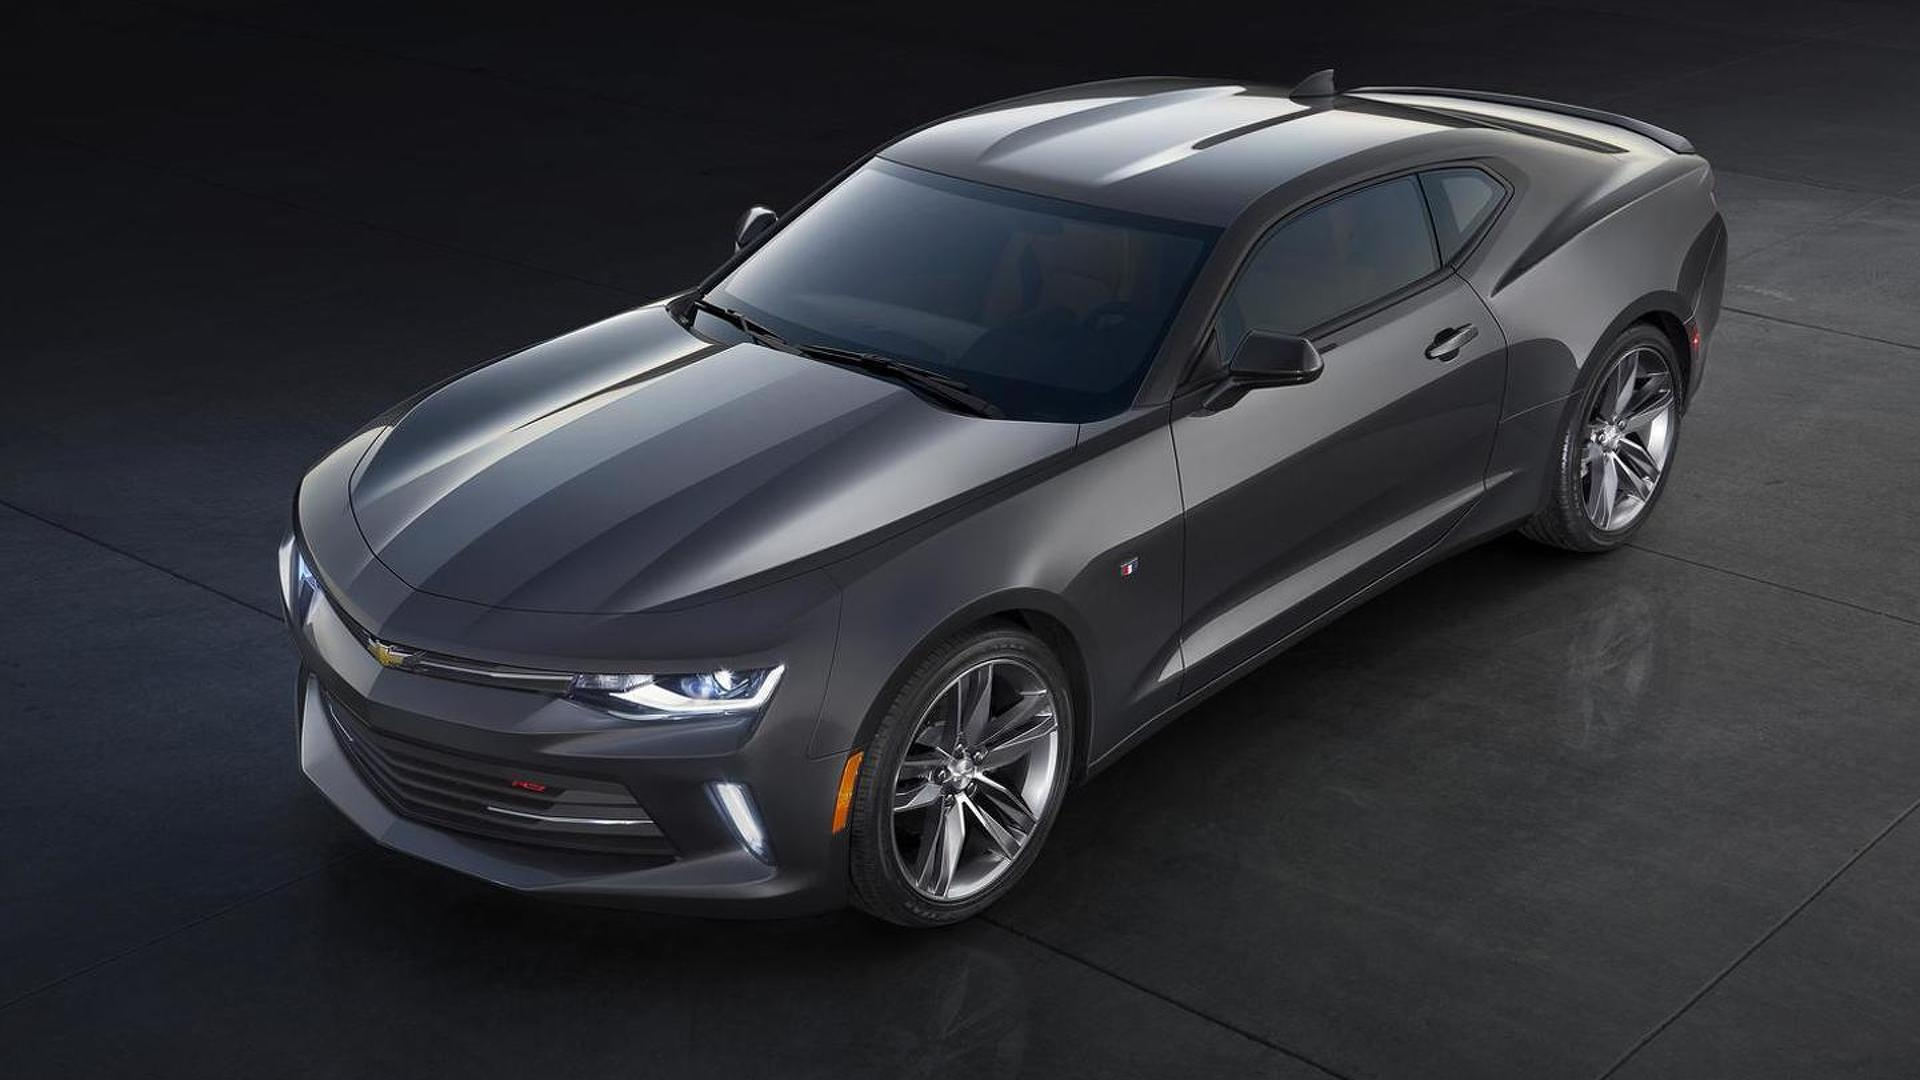 Chevrolet Camaro News And Reviews Motor1 Com